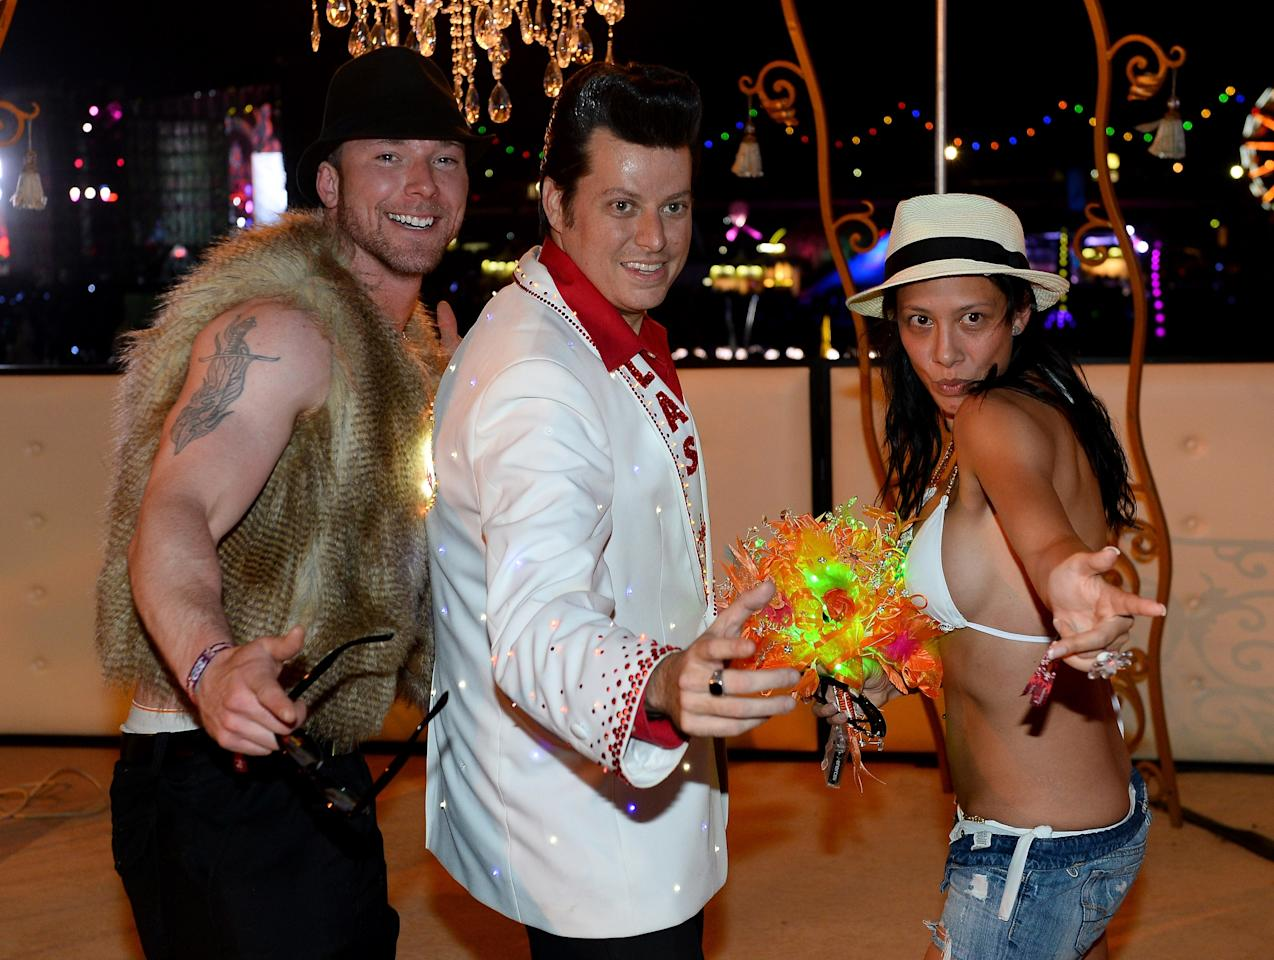 LAS VEGAS, NV - JUNE 23: Elvis Presley impersonator Brian Mills (C) poses for pictures with Jordan Bredin (L) and Jaime Doucet (R) of Canada after Mills performed their wedding ceremony at the 17th annual Electric Daisy Carnival at Las Vegas Motor Speedway on June 23, 2013 in Las Vegas, Nevada. (Photo by Ethan Miller/Getty Images)